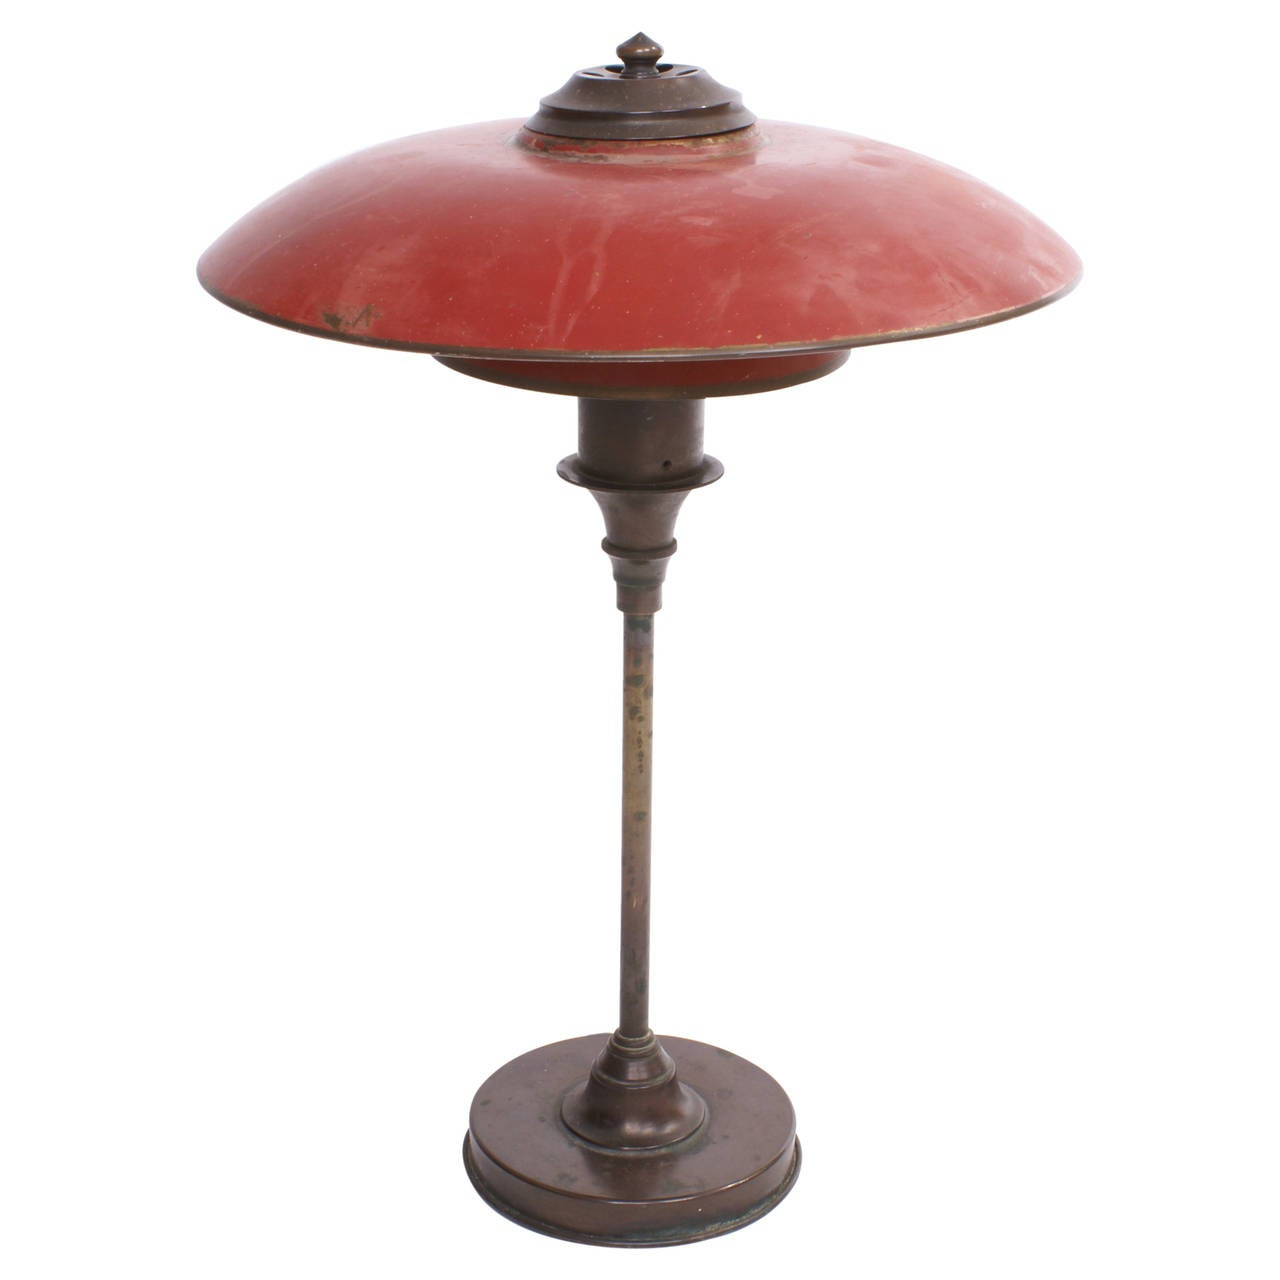 Lyfa 1920s Desk Lamp with Red Bronze Shades For Sale at